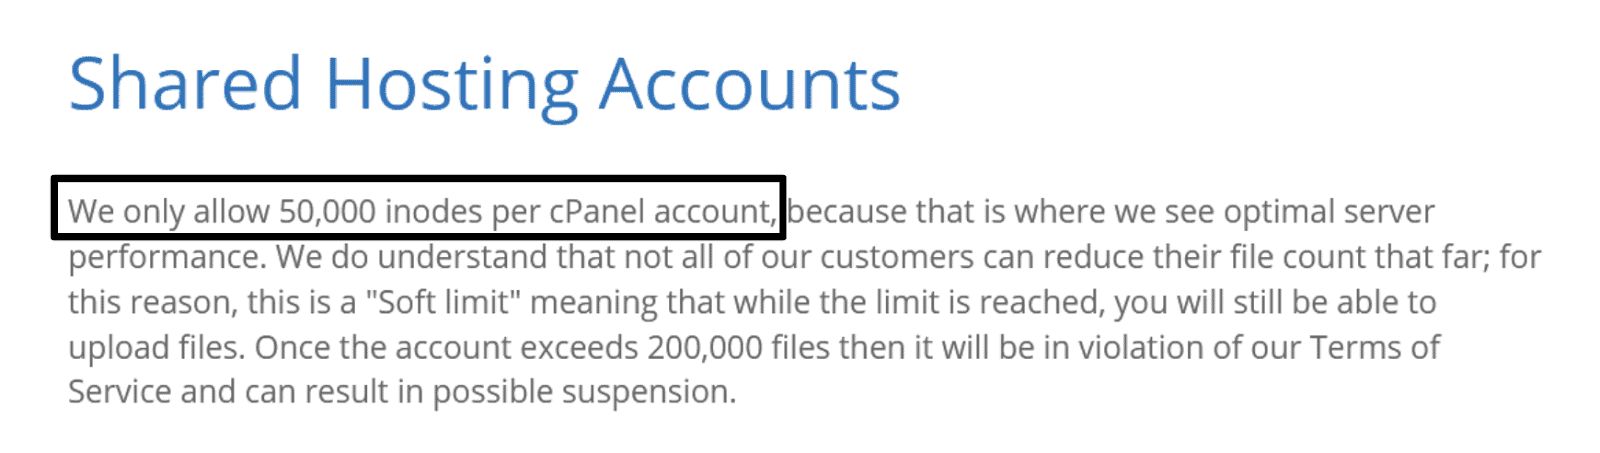 Bluehost terms of service - 50,000 inodes per cPanel account